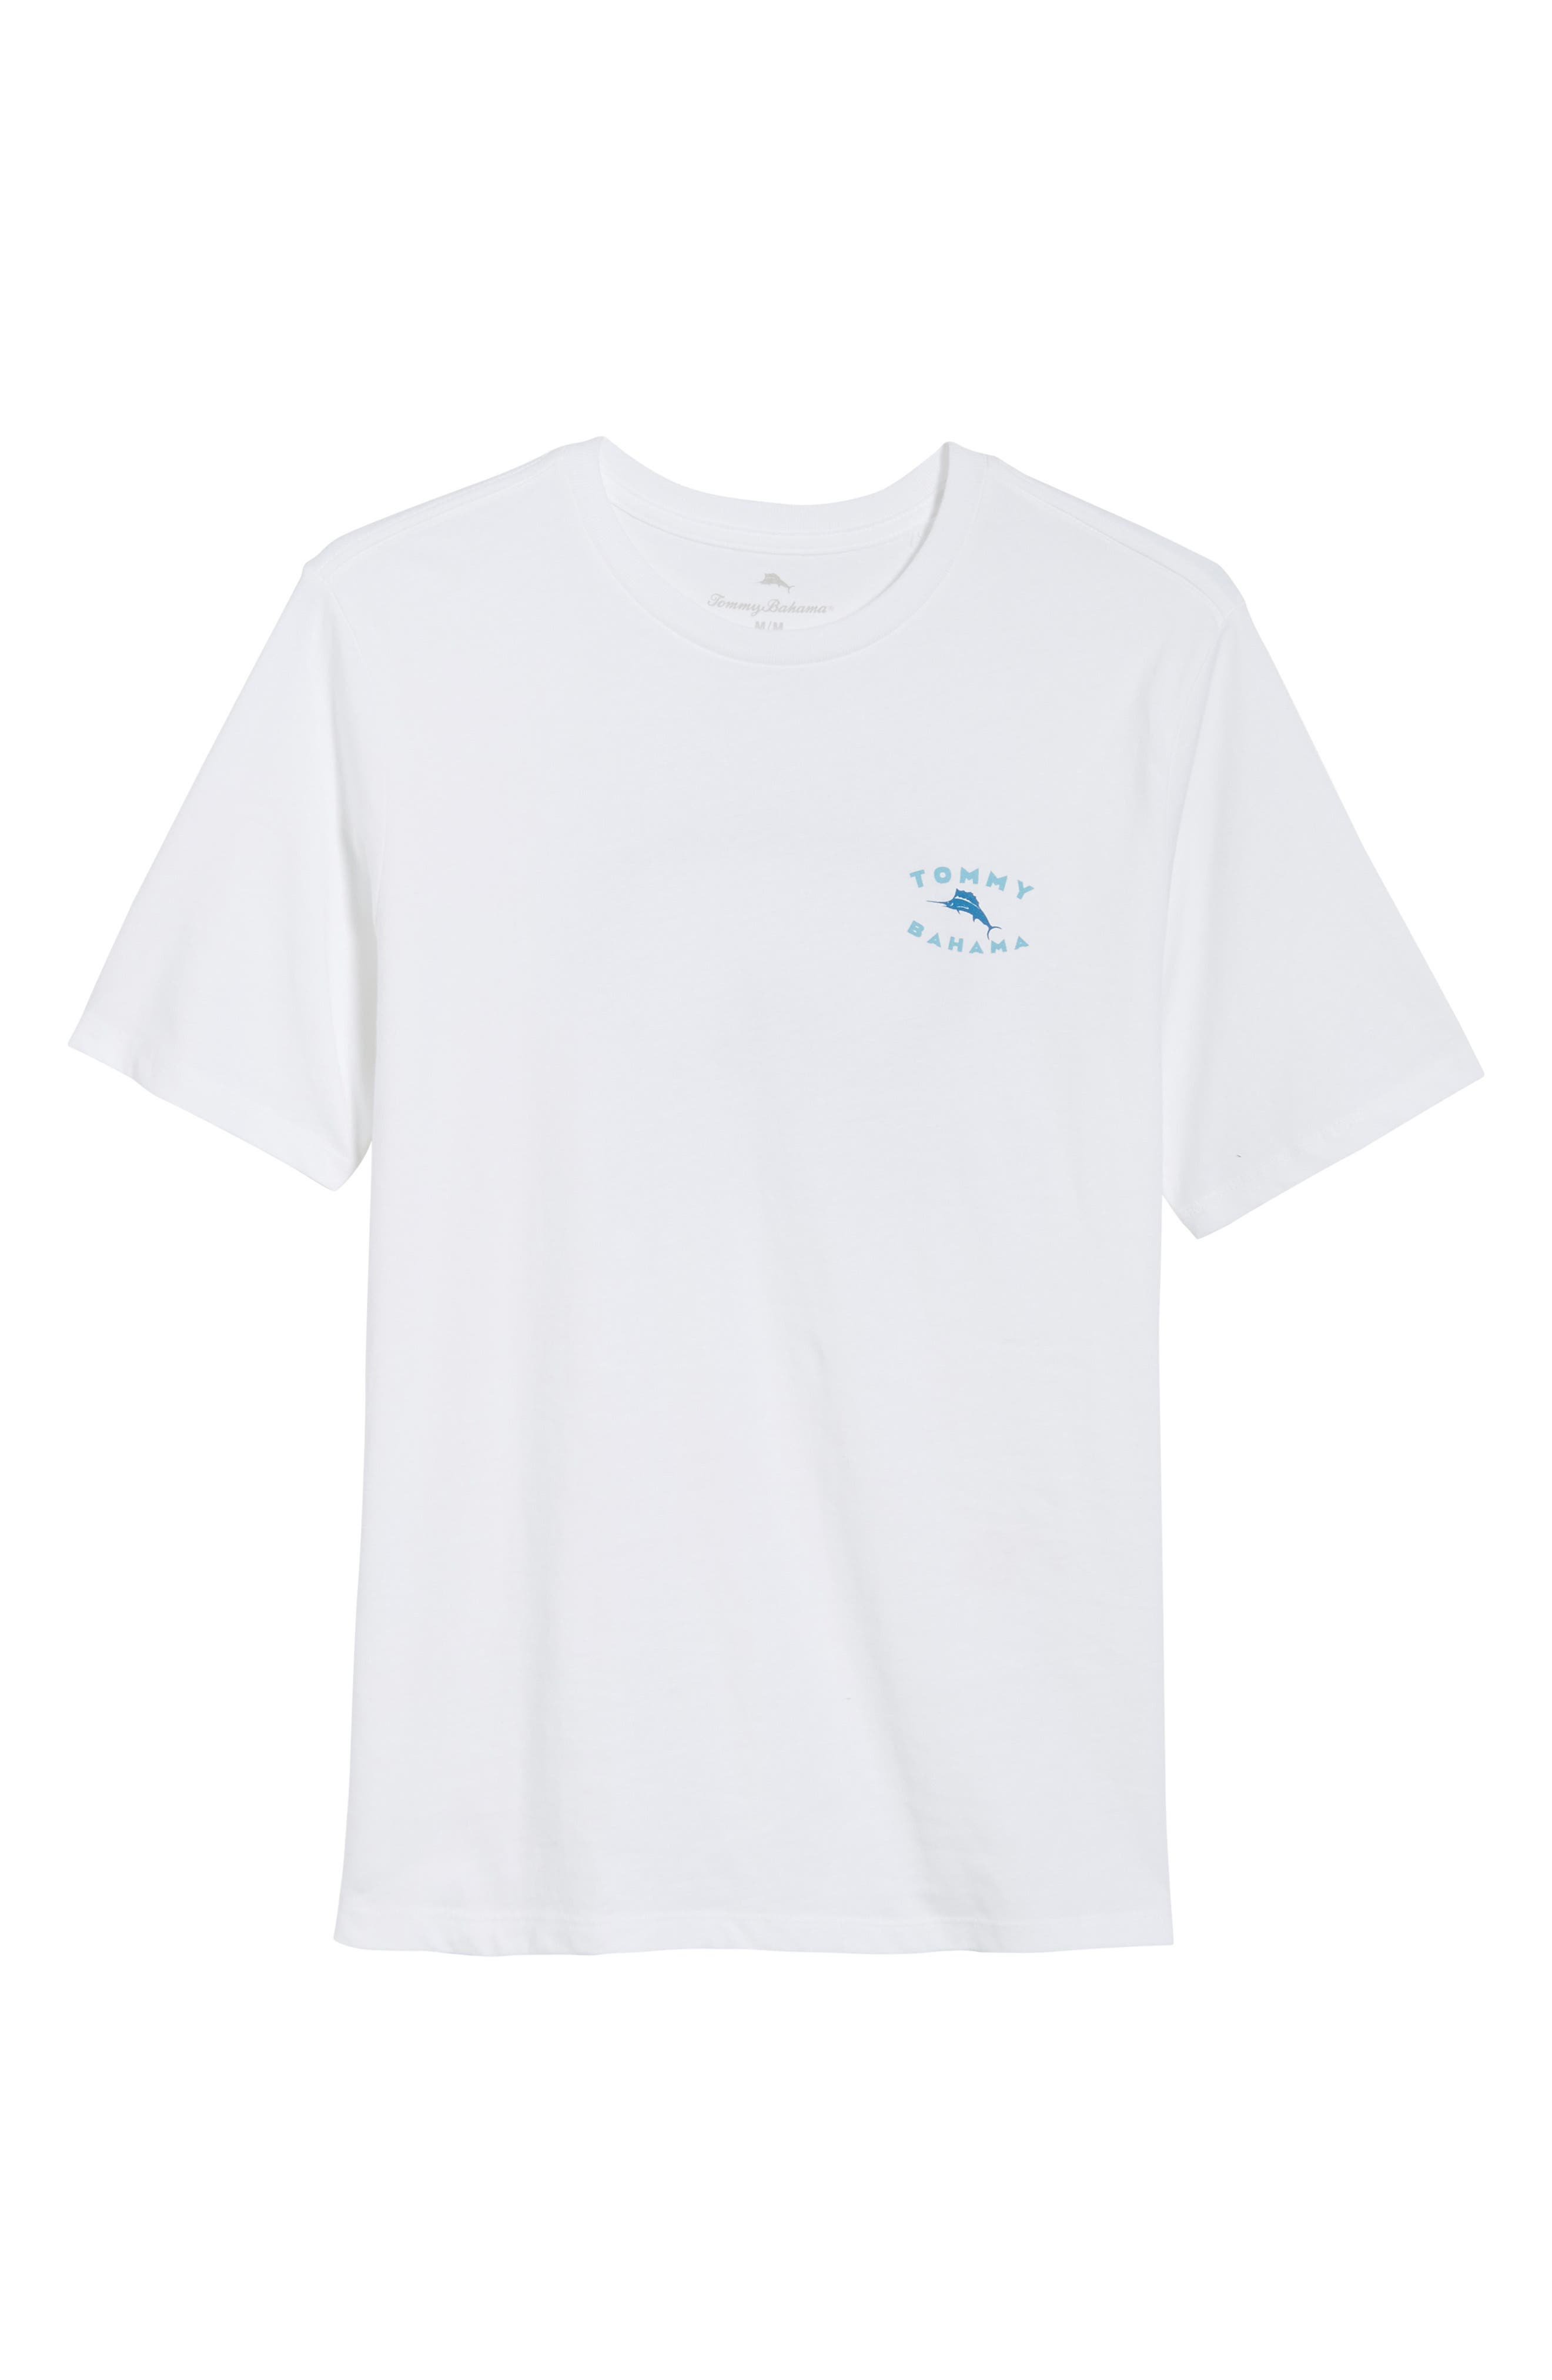 TOMMY BAHAMA,                             Complete Transparency T-Shirt,                             Alternate thumbnail 6, color,                             100